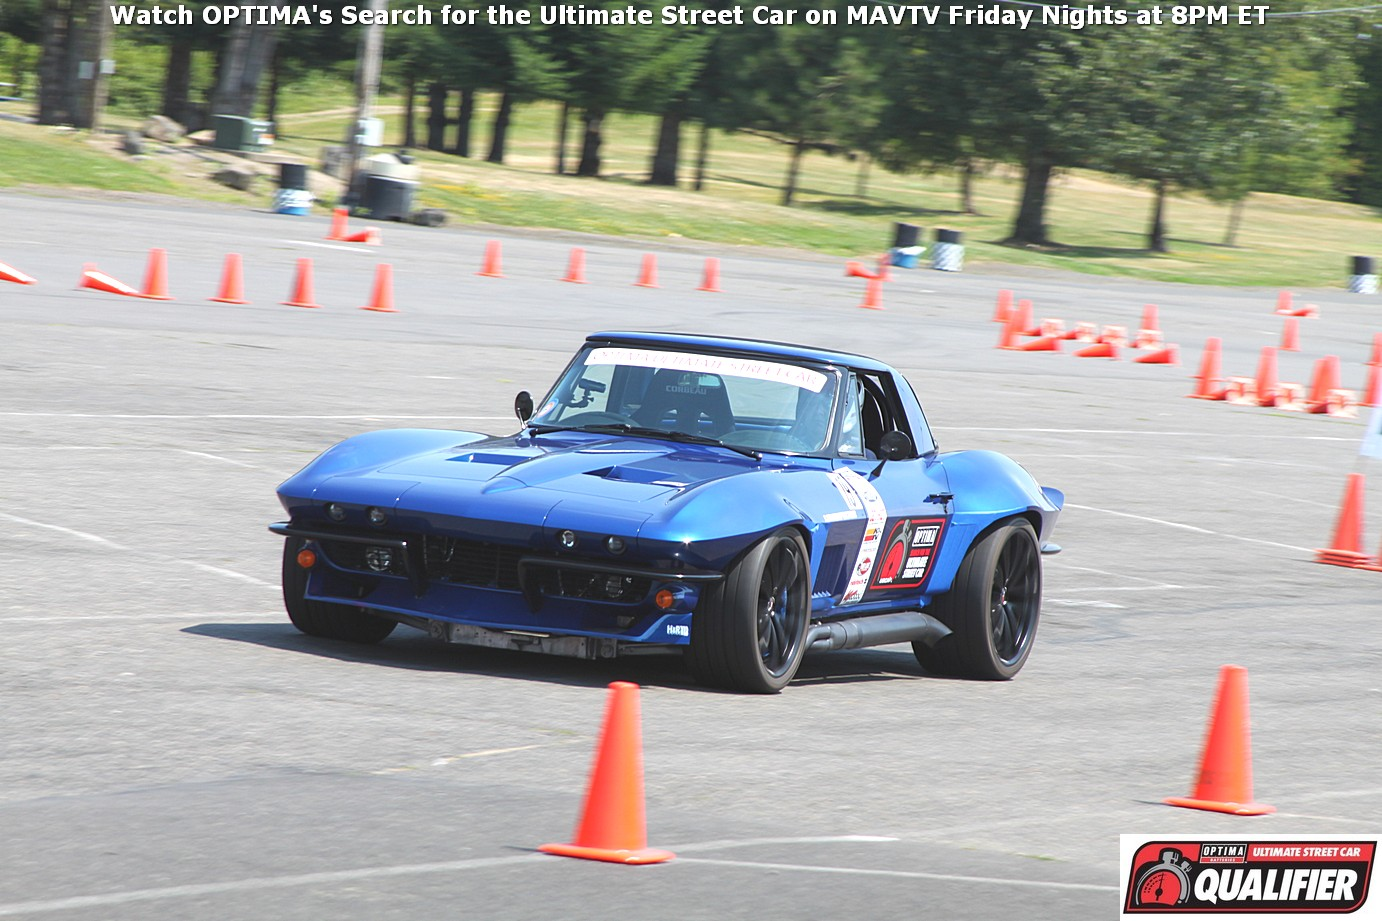 2014 OUSCI Preview- Dan Livezey's 1964 Chevrolet Corvette